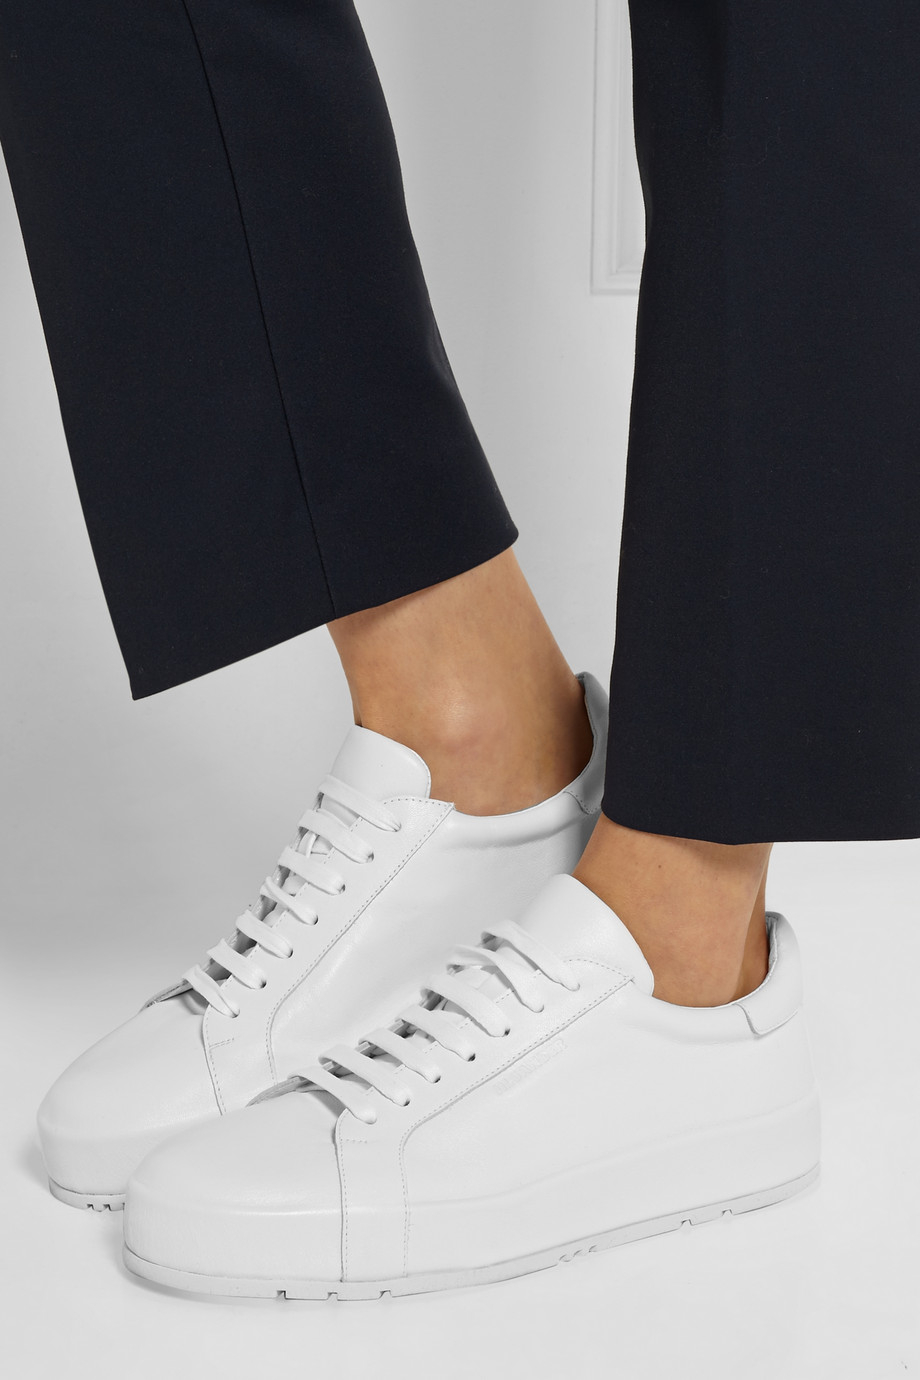 FOOTWEAR - Low-tops & sneakers Jil Sander TZ6kkl